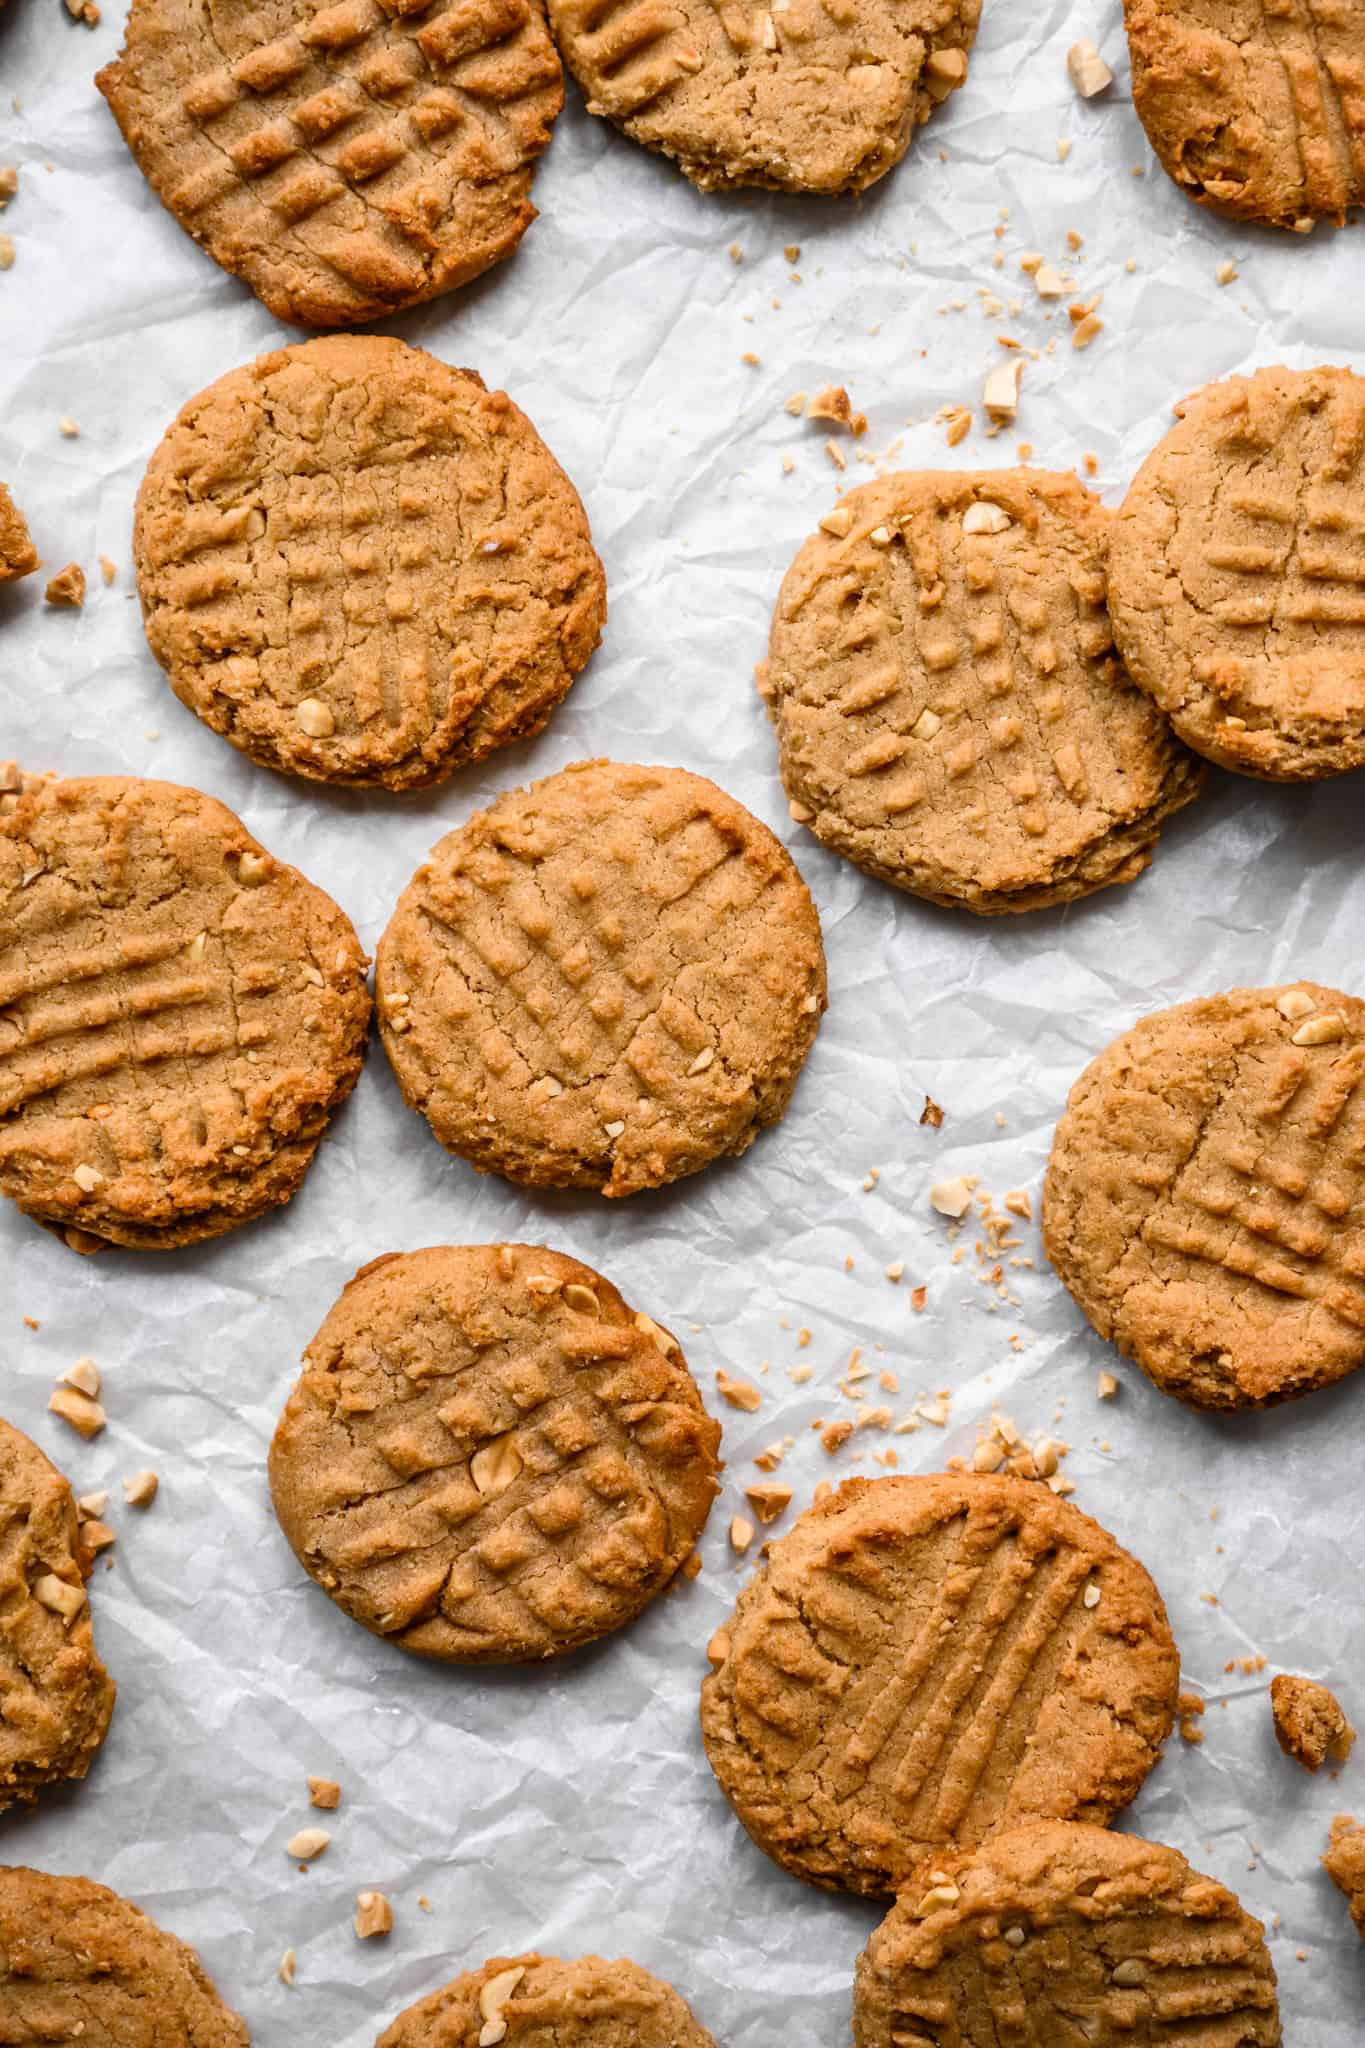 overhead view of vegan and gluten free peanut butter cookies on parchment paper